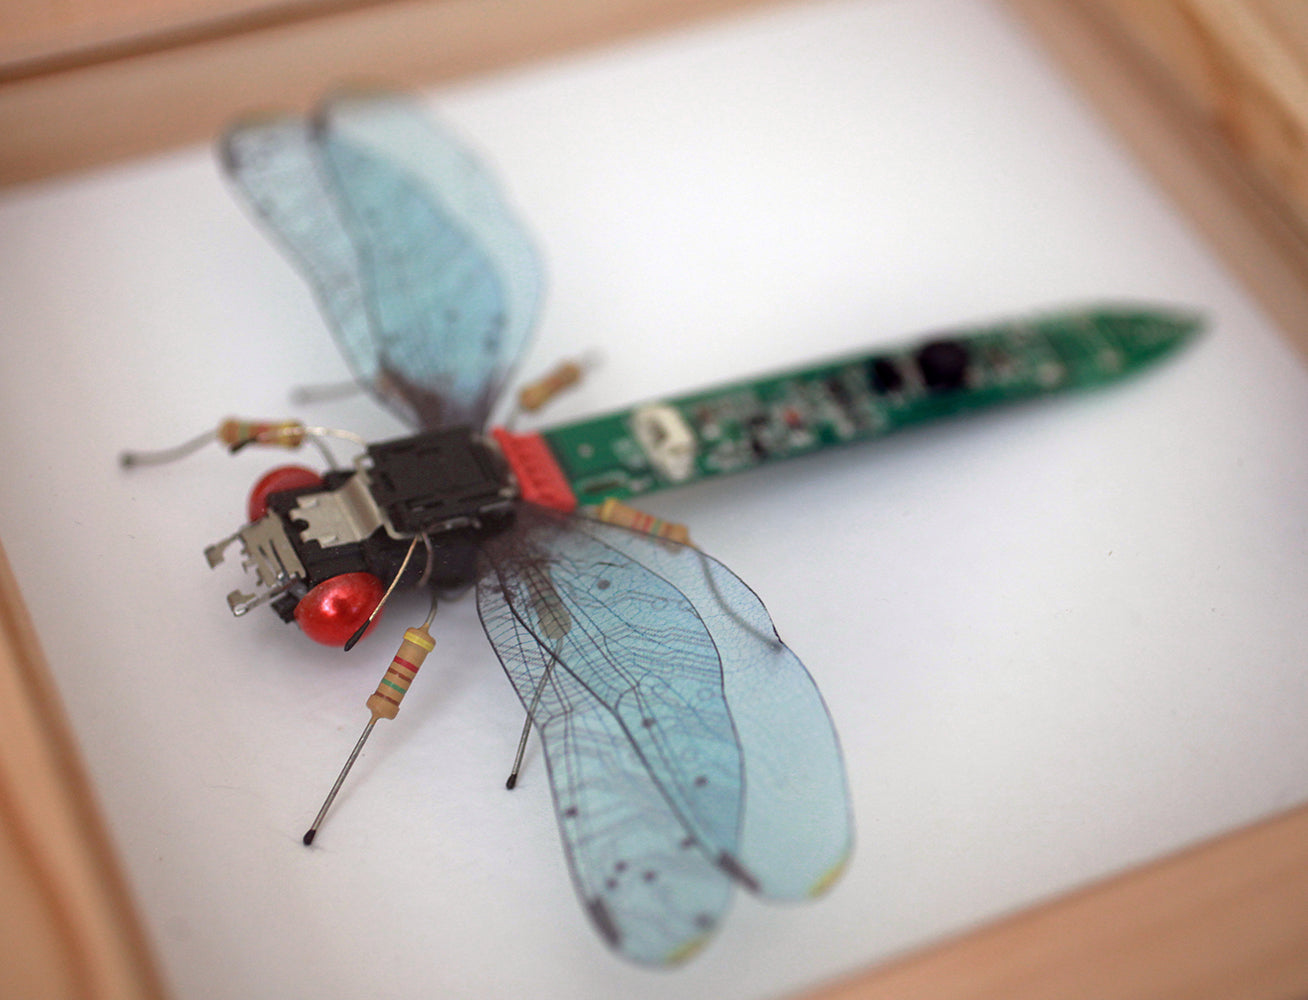 Circuit Board Blue Dragonfly | Seeds for Kindness | Upcycled, Repurposed, Reimagined